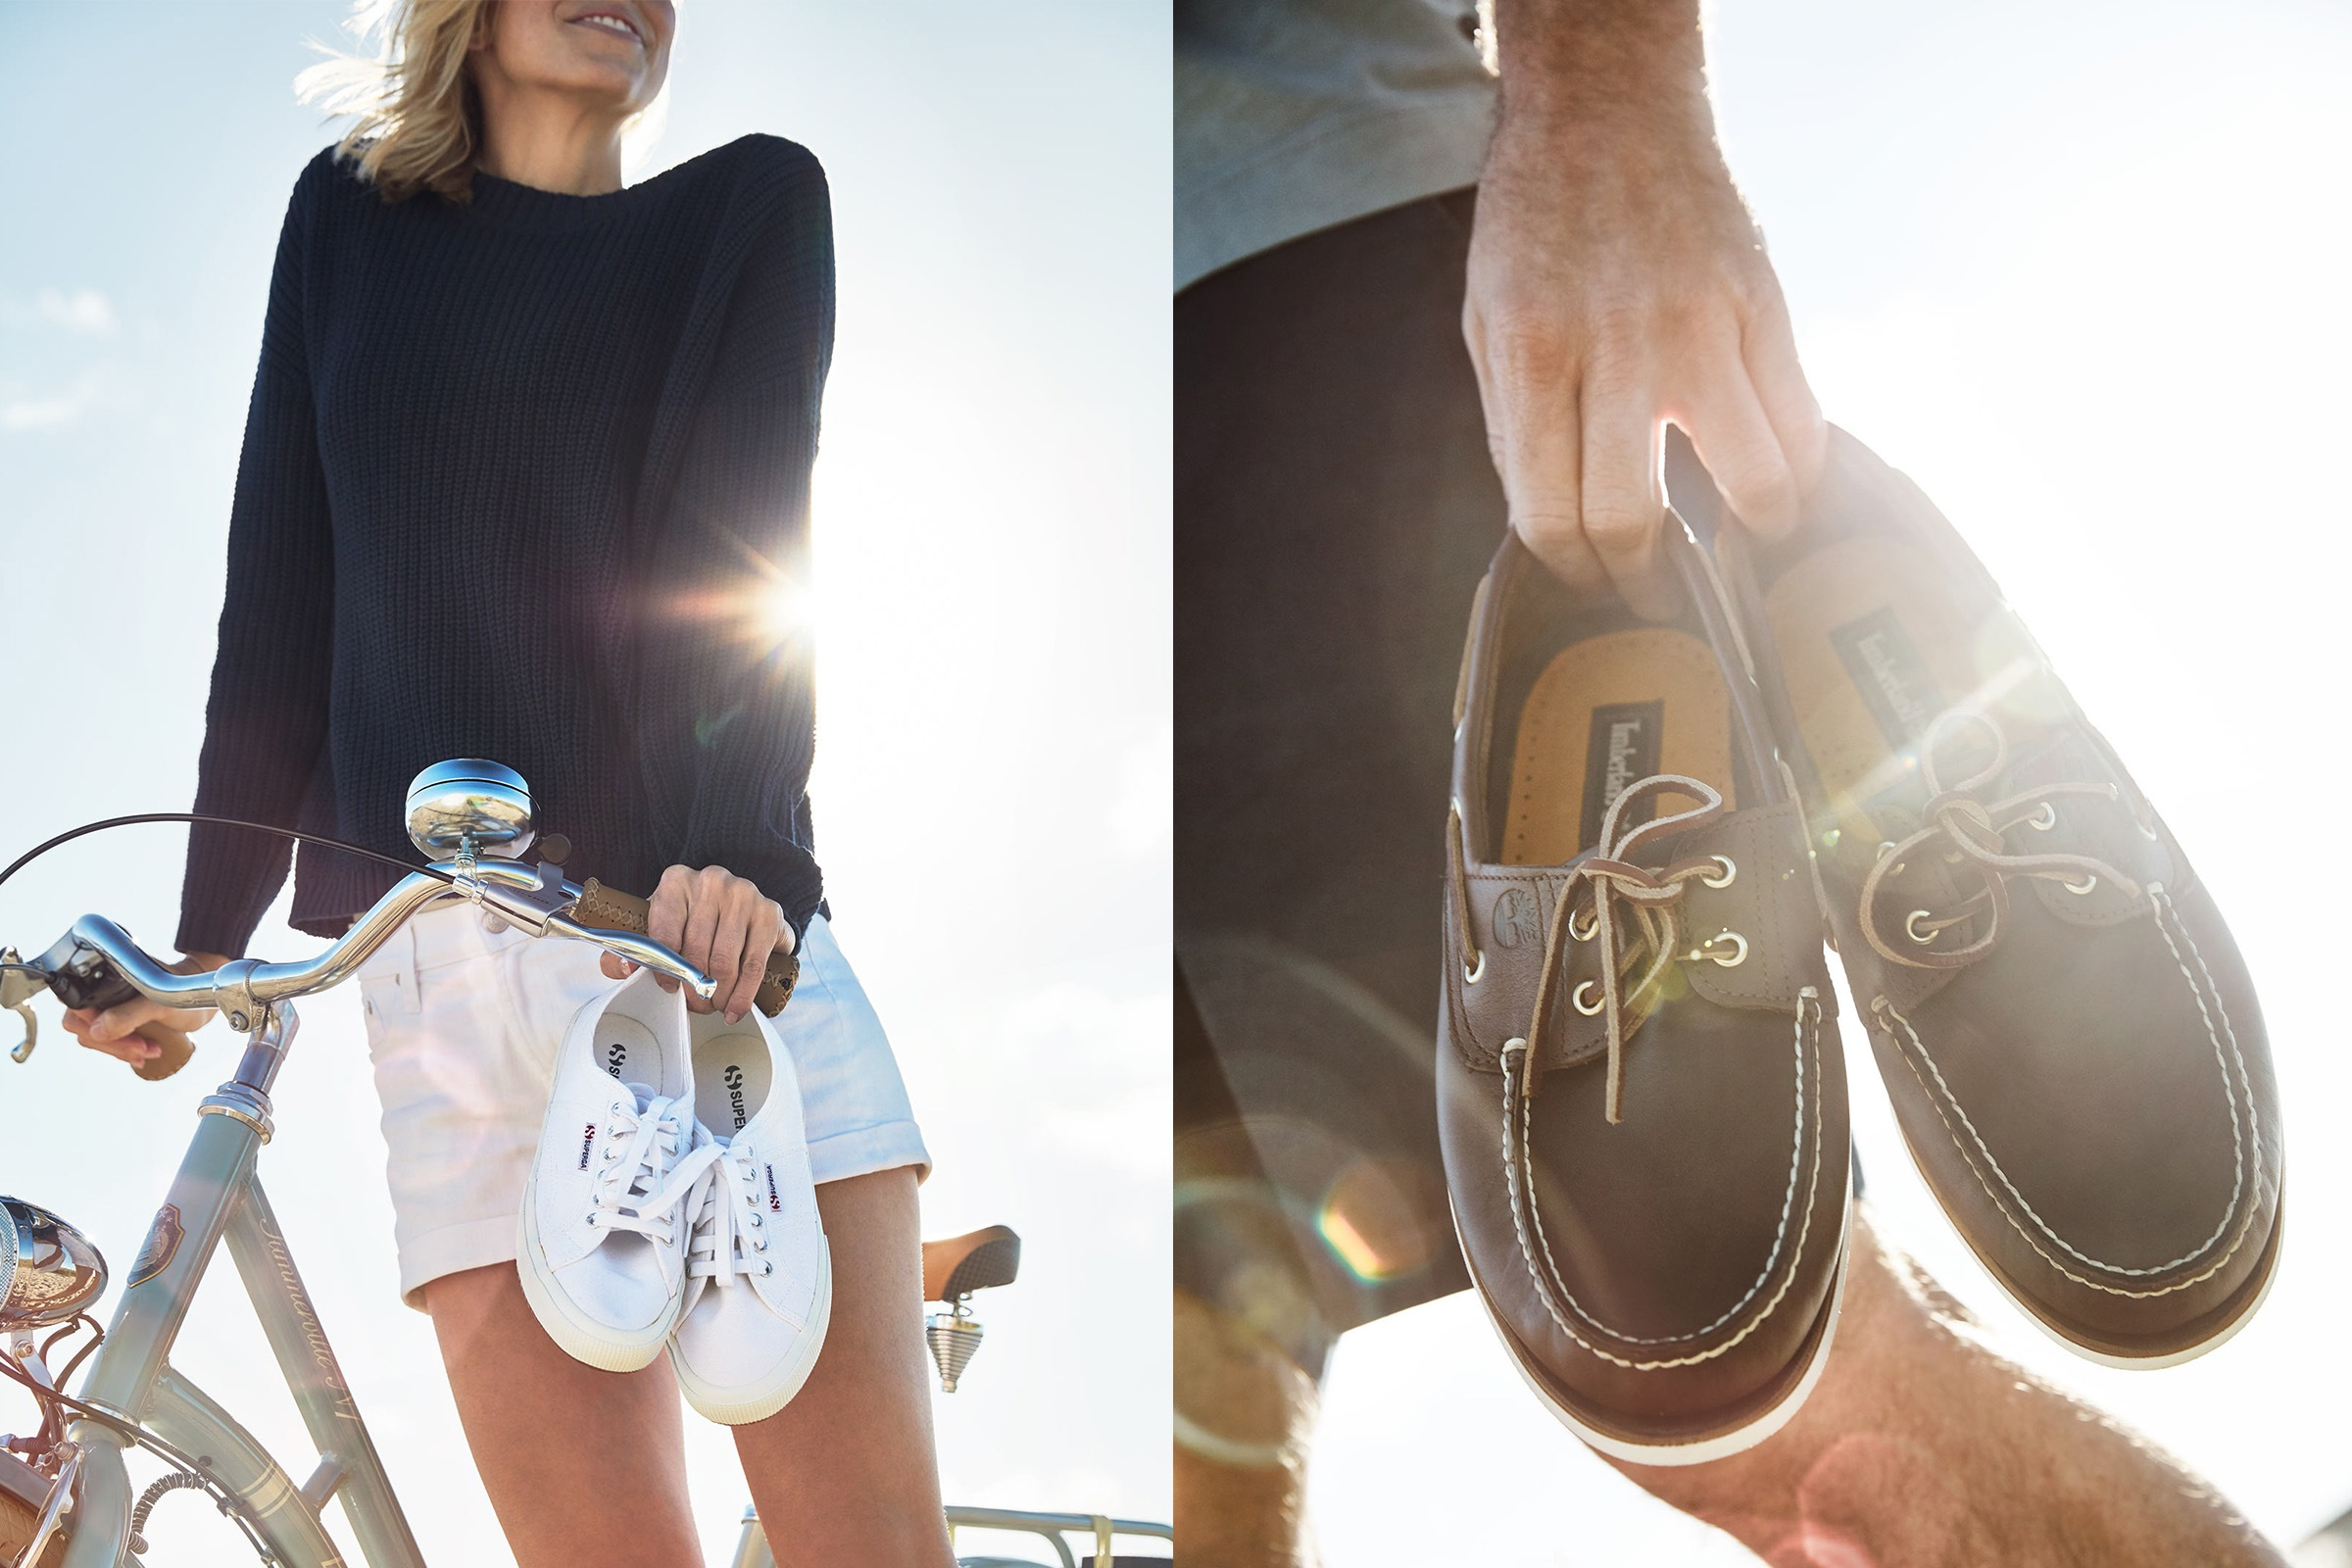 Schuhkay-Imageshooting-Sommer2018-7